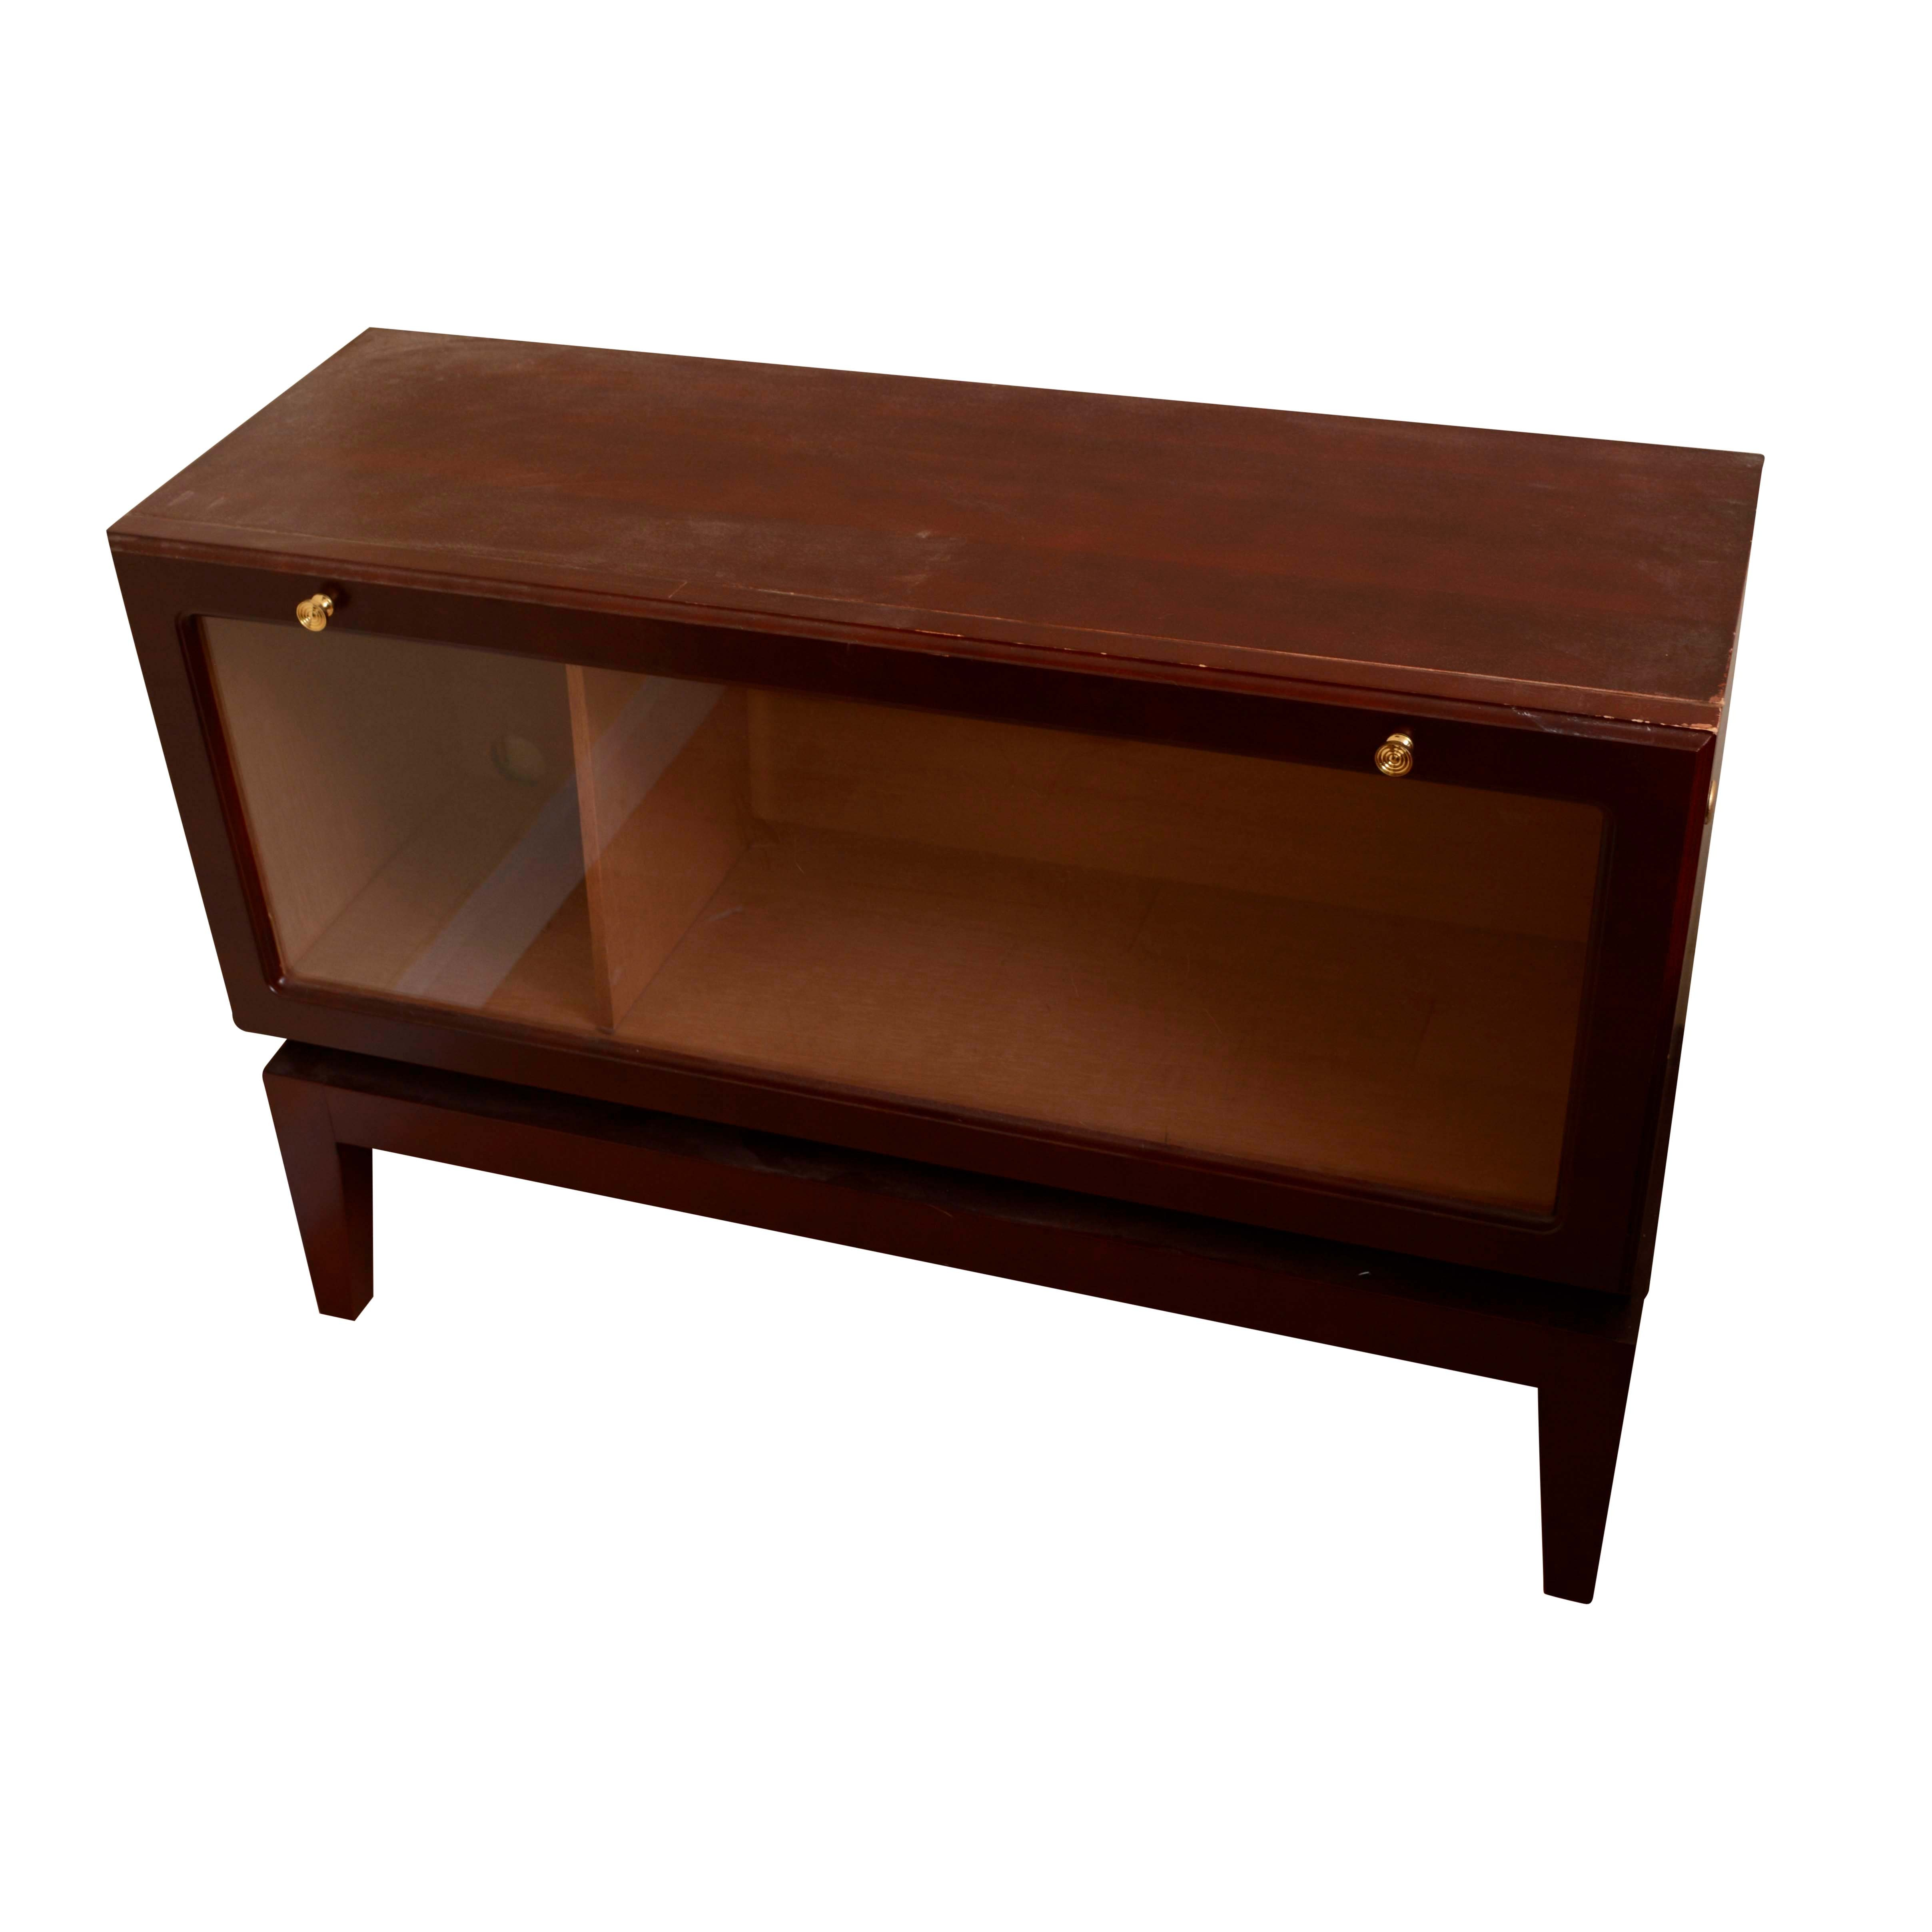 Barrister Style Media Cabinet